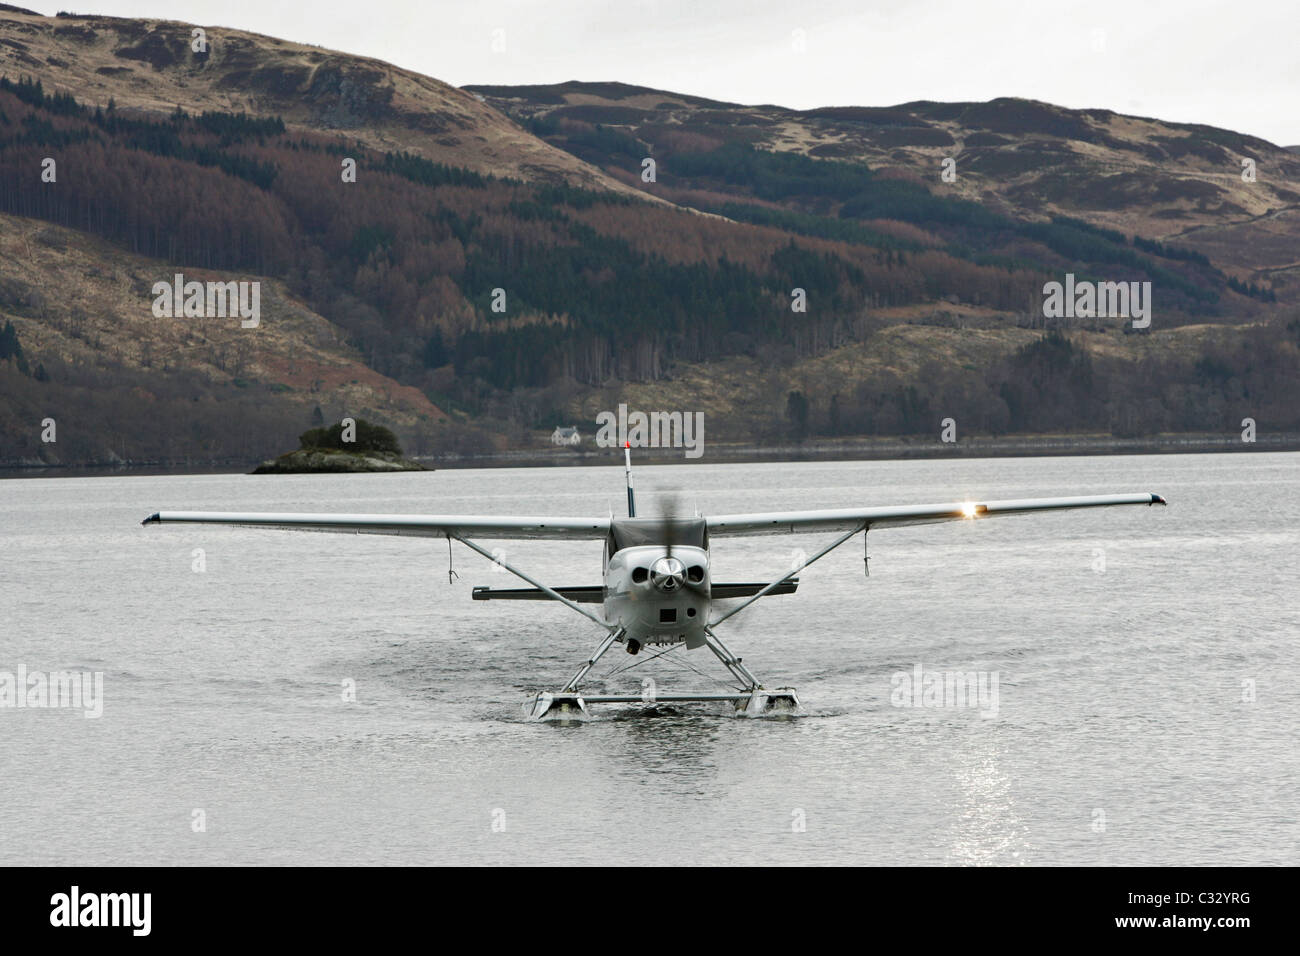 One of Loch Lomond Seaplanes aircraft taxiing towards shore on Loch Lomond - Stock Image